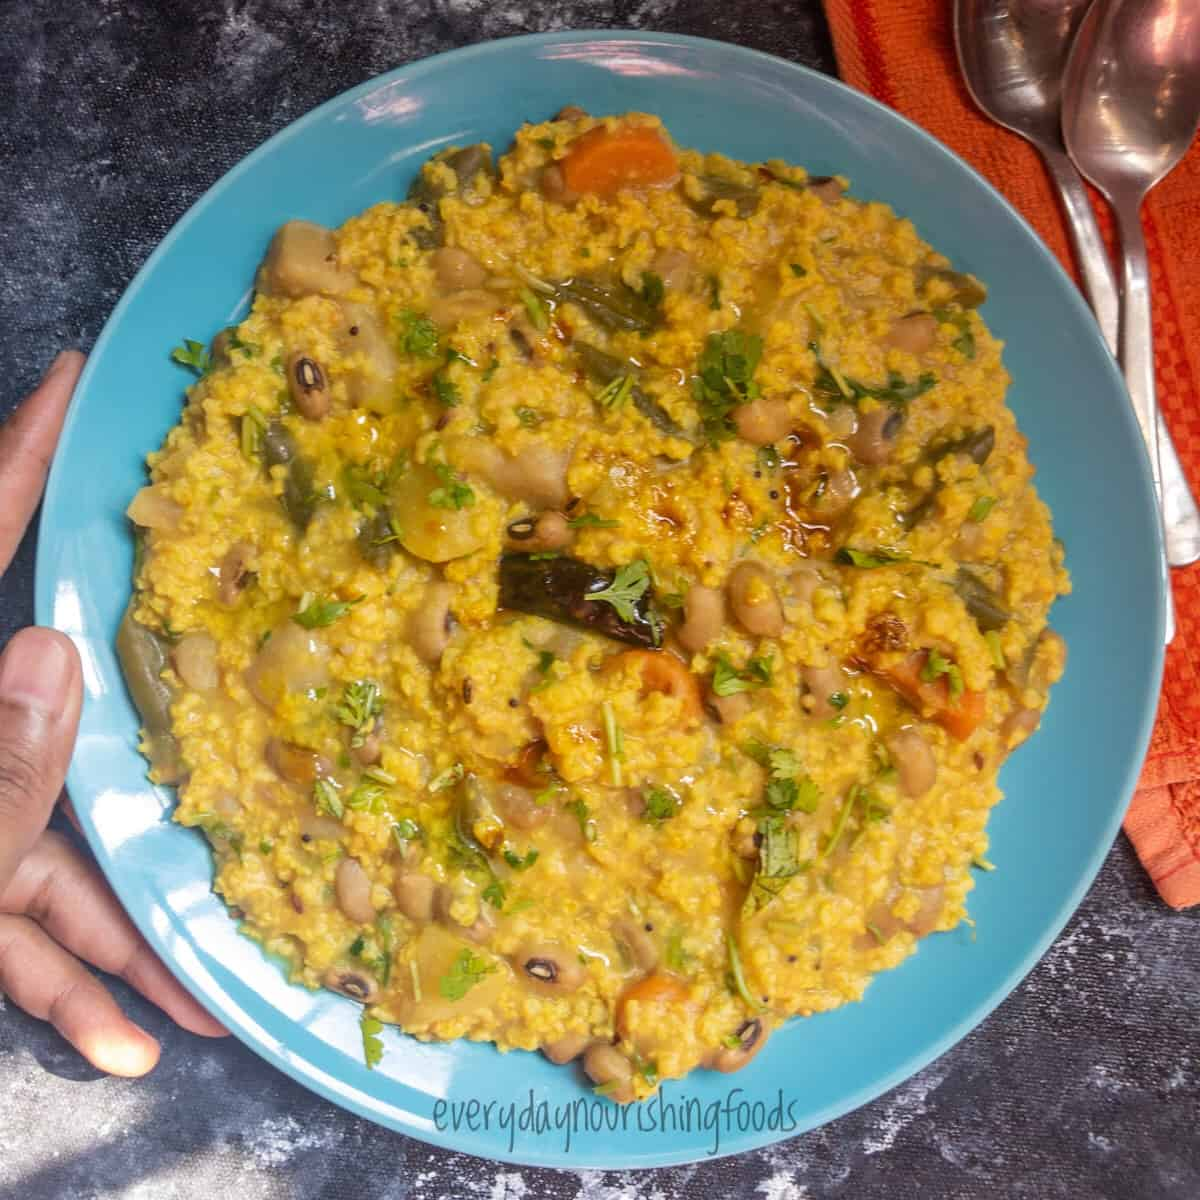 millet khichdi served in a plate